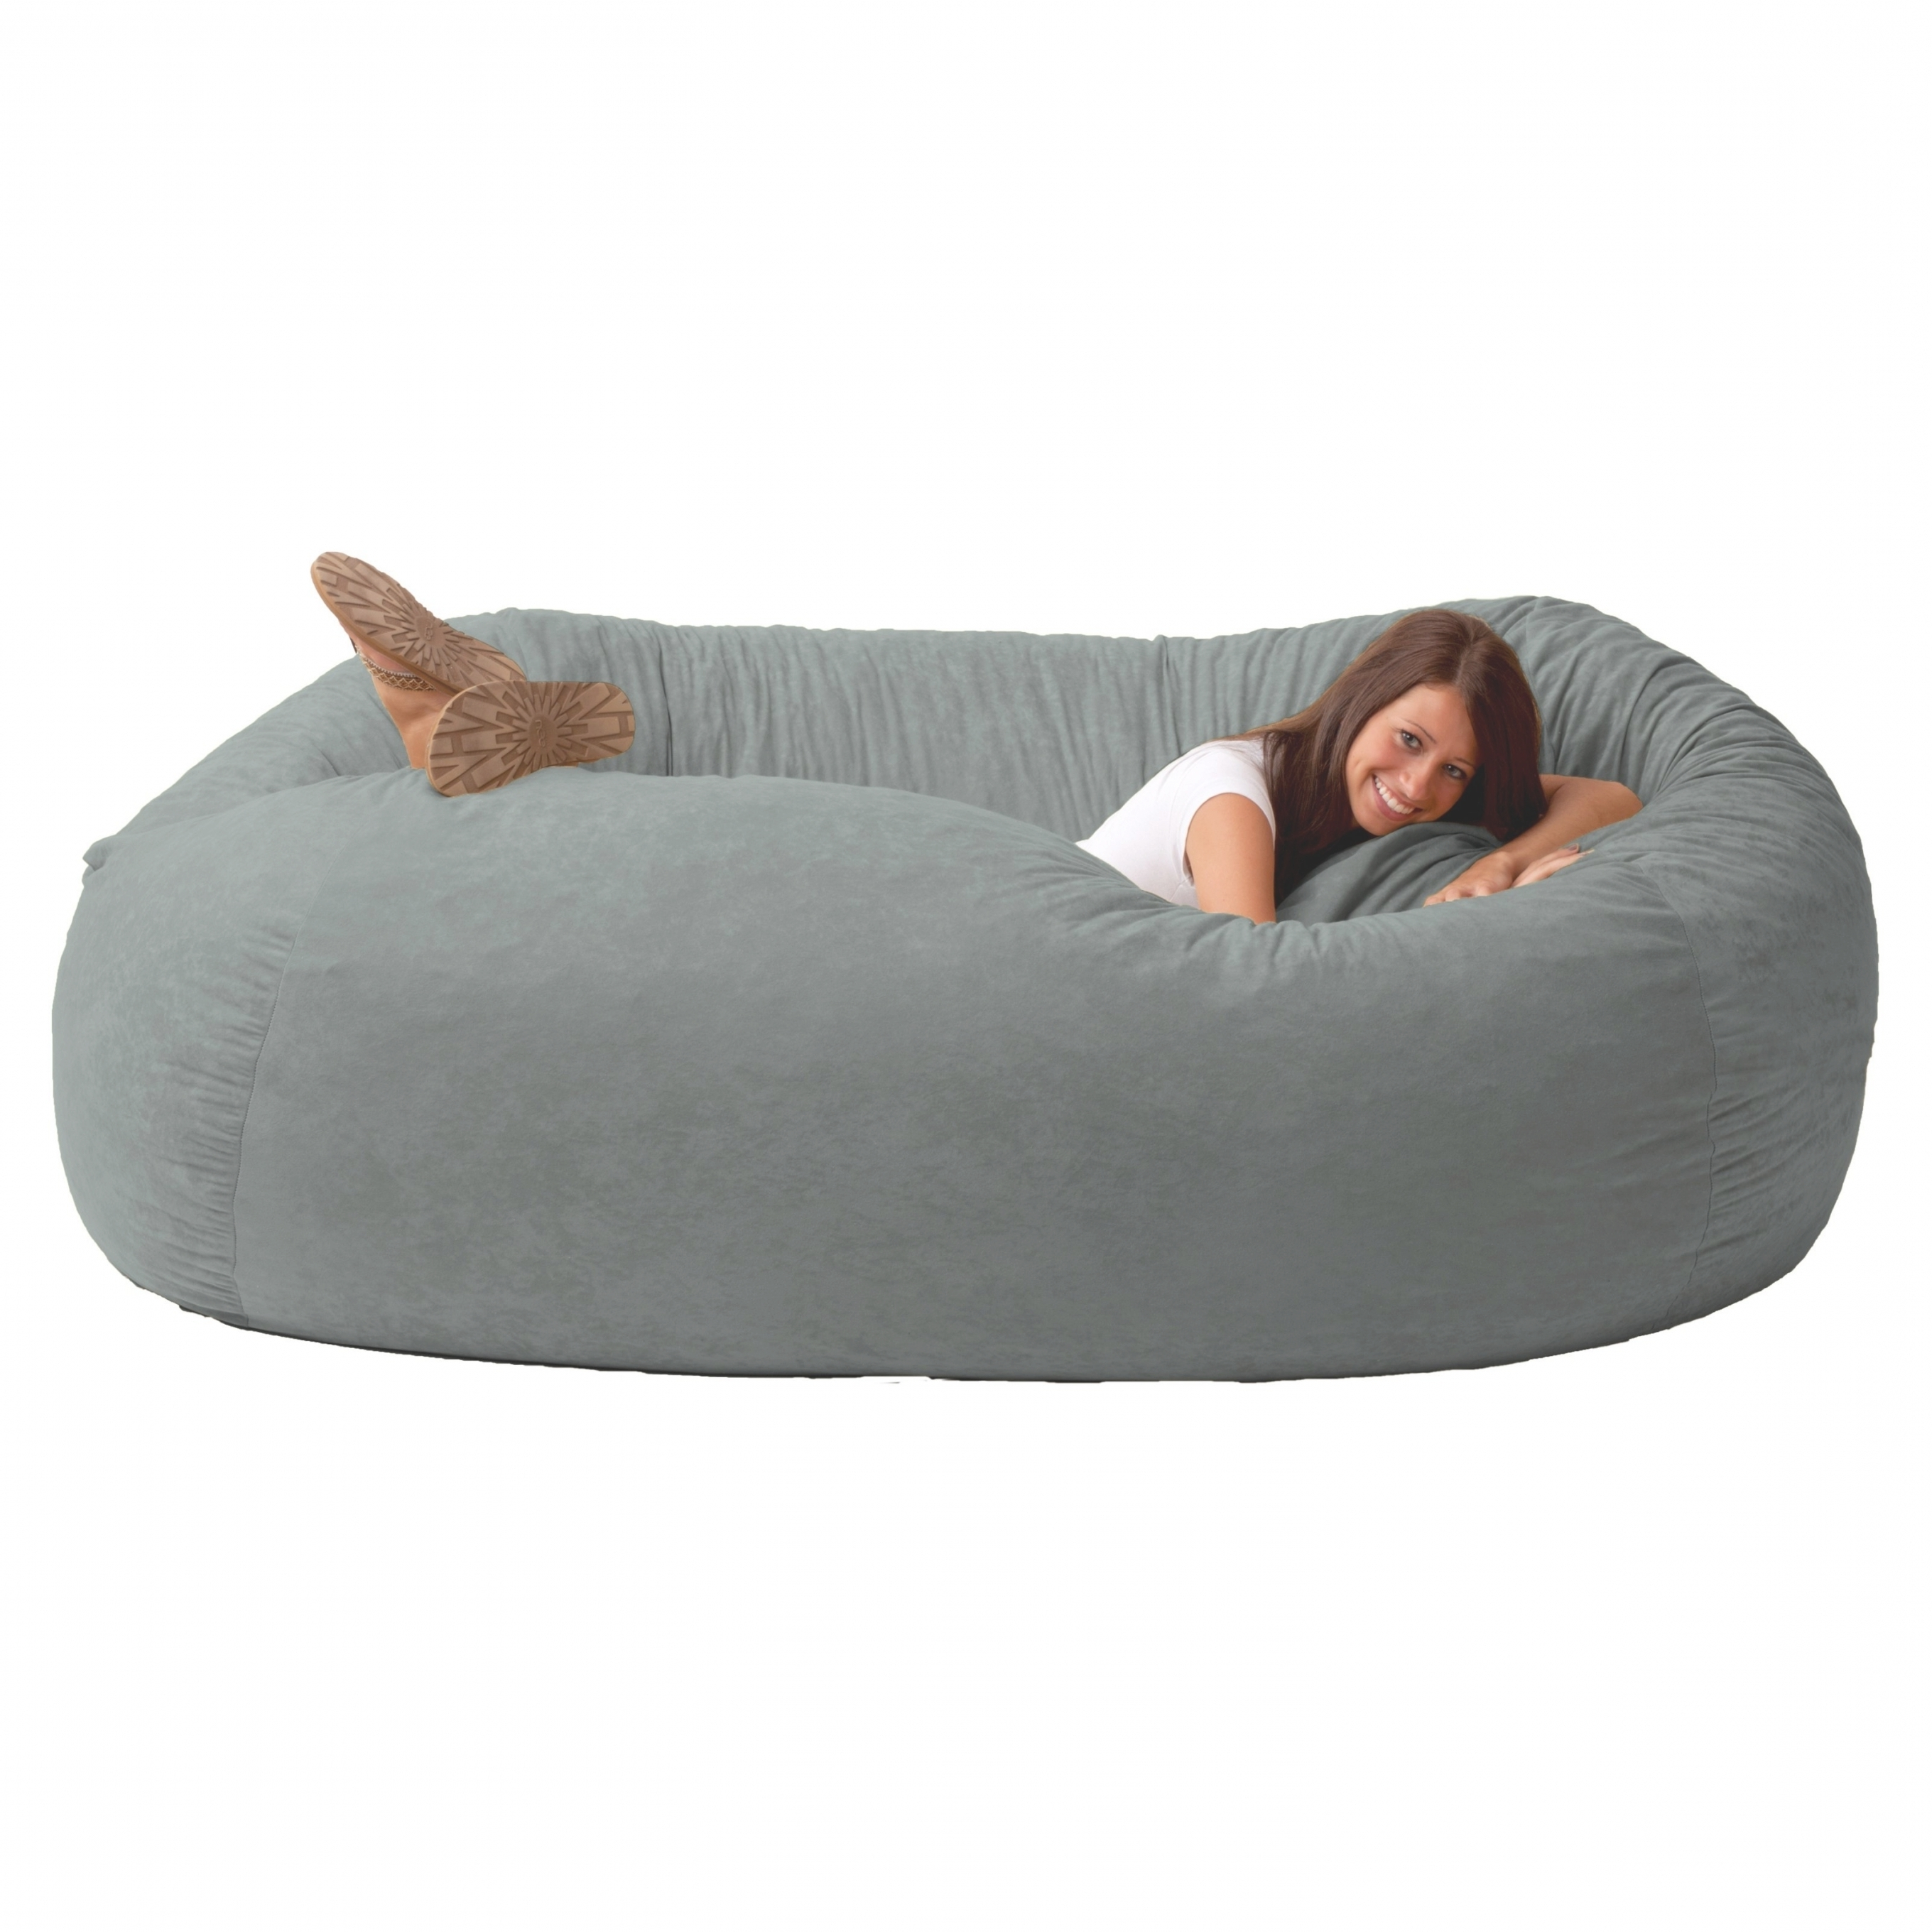 Famous Bean Bag Sofas And Chairs Regarding Interior: Bean Bags That Turn Into Beds And Corduroy Bean Bag Bed (View 2 of 20)